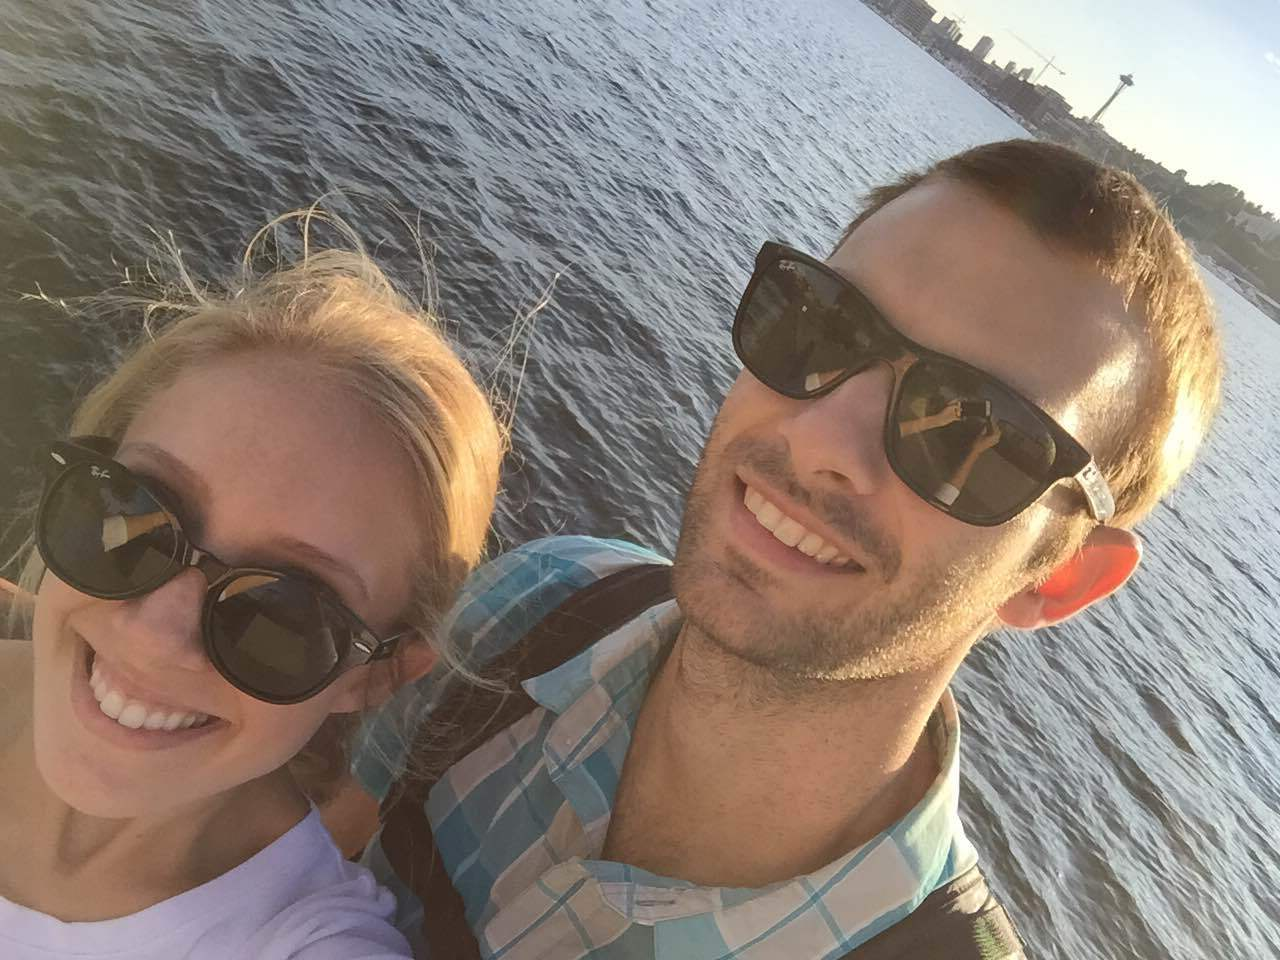 traveling with your spouse - marriage advice